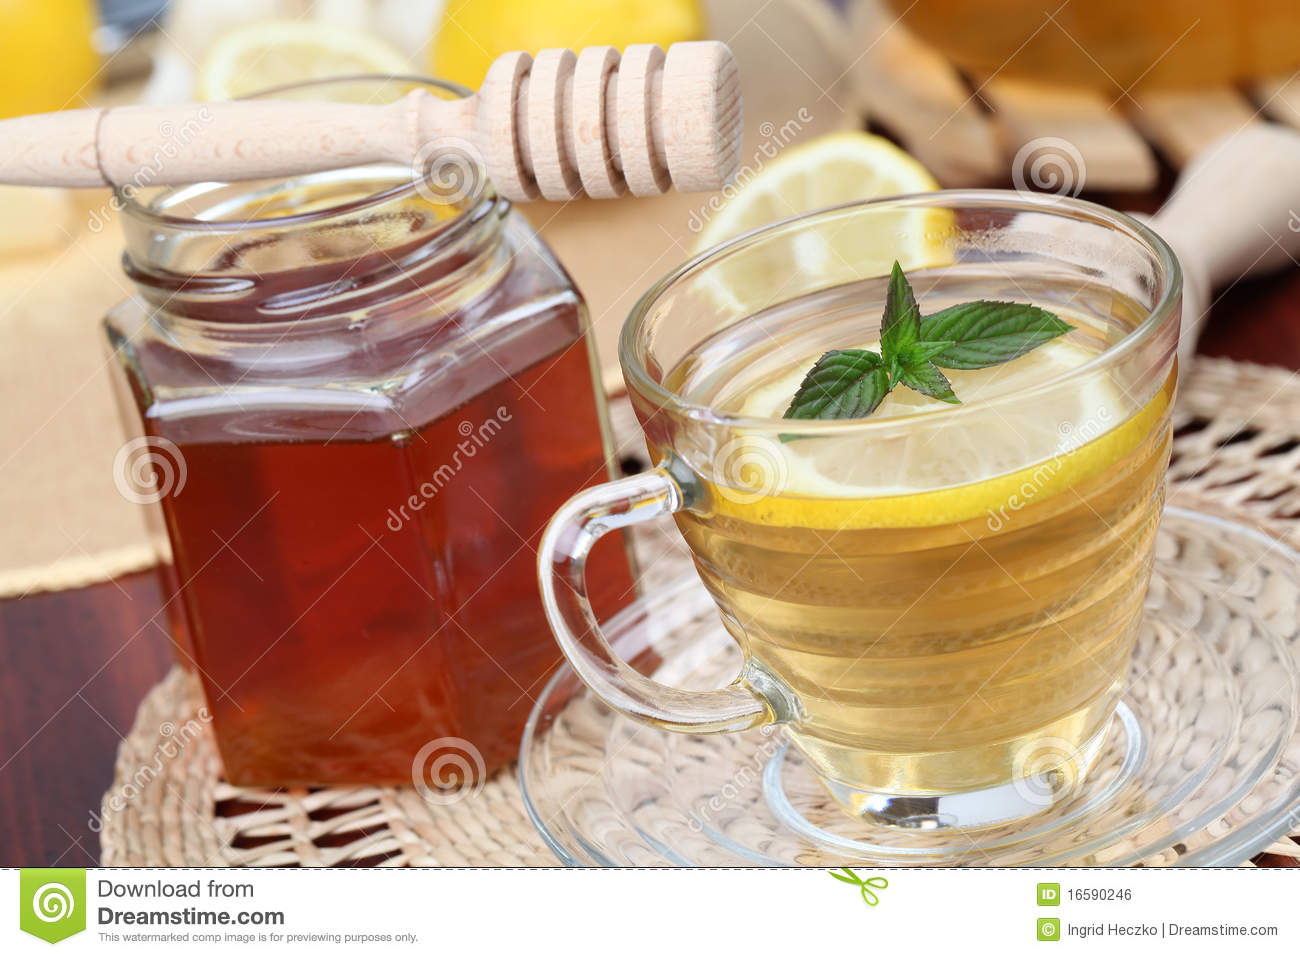 Tea With Honey And Lemon Royalty Free Stock Image - Image: 16590246